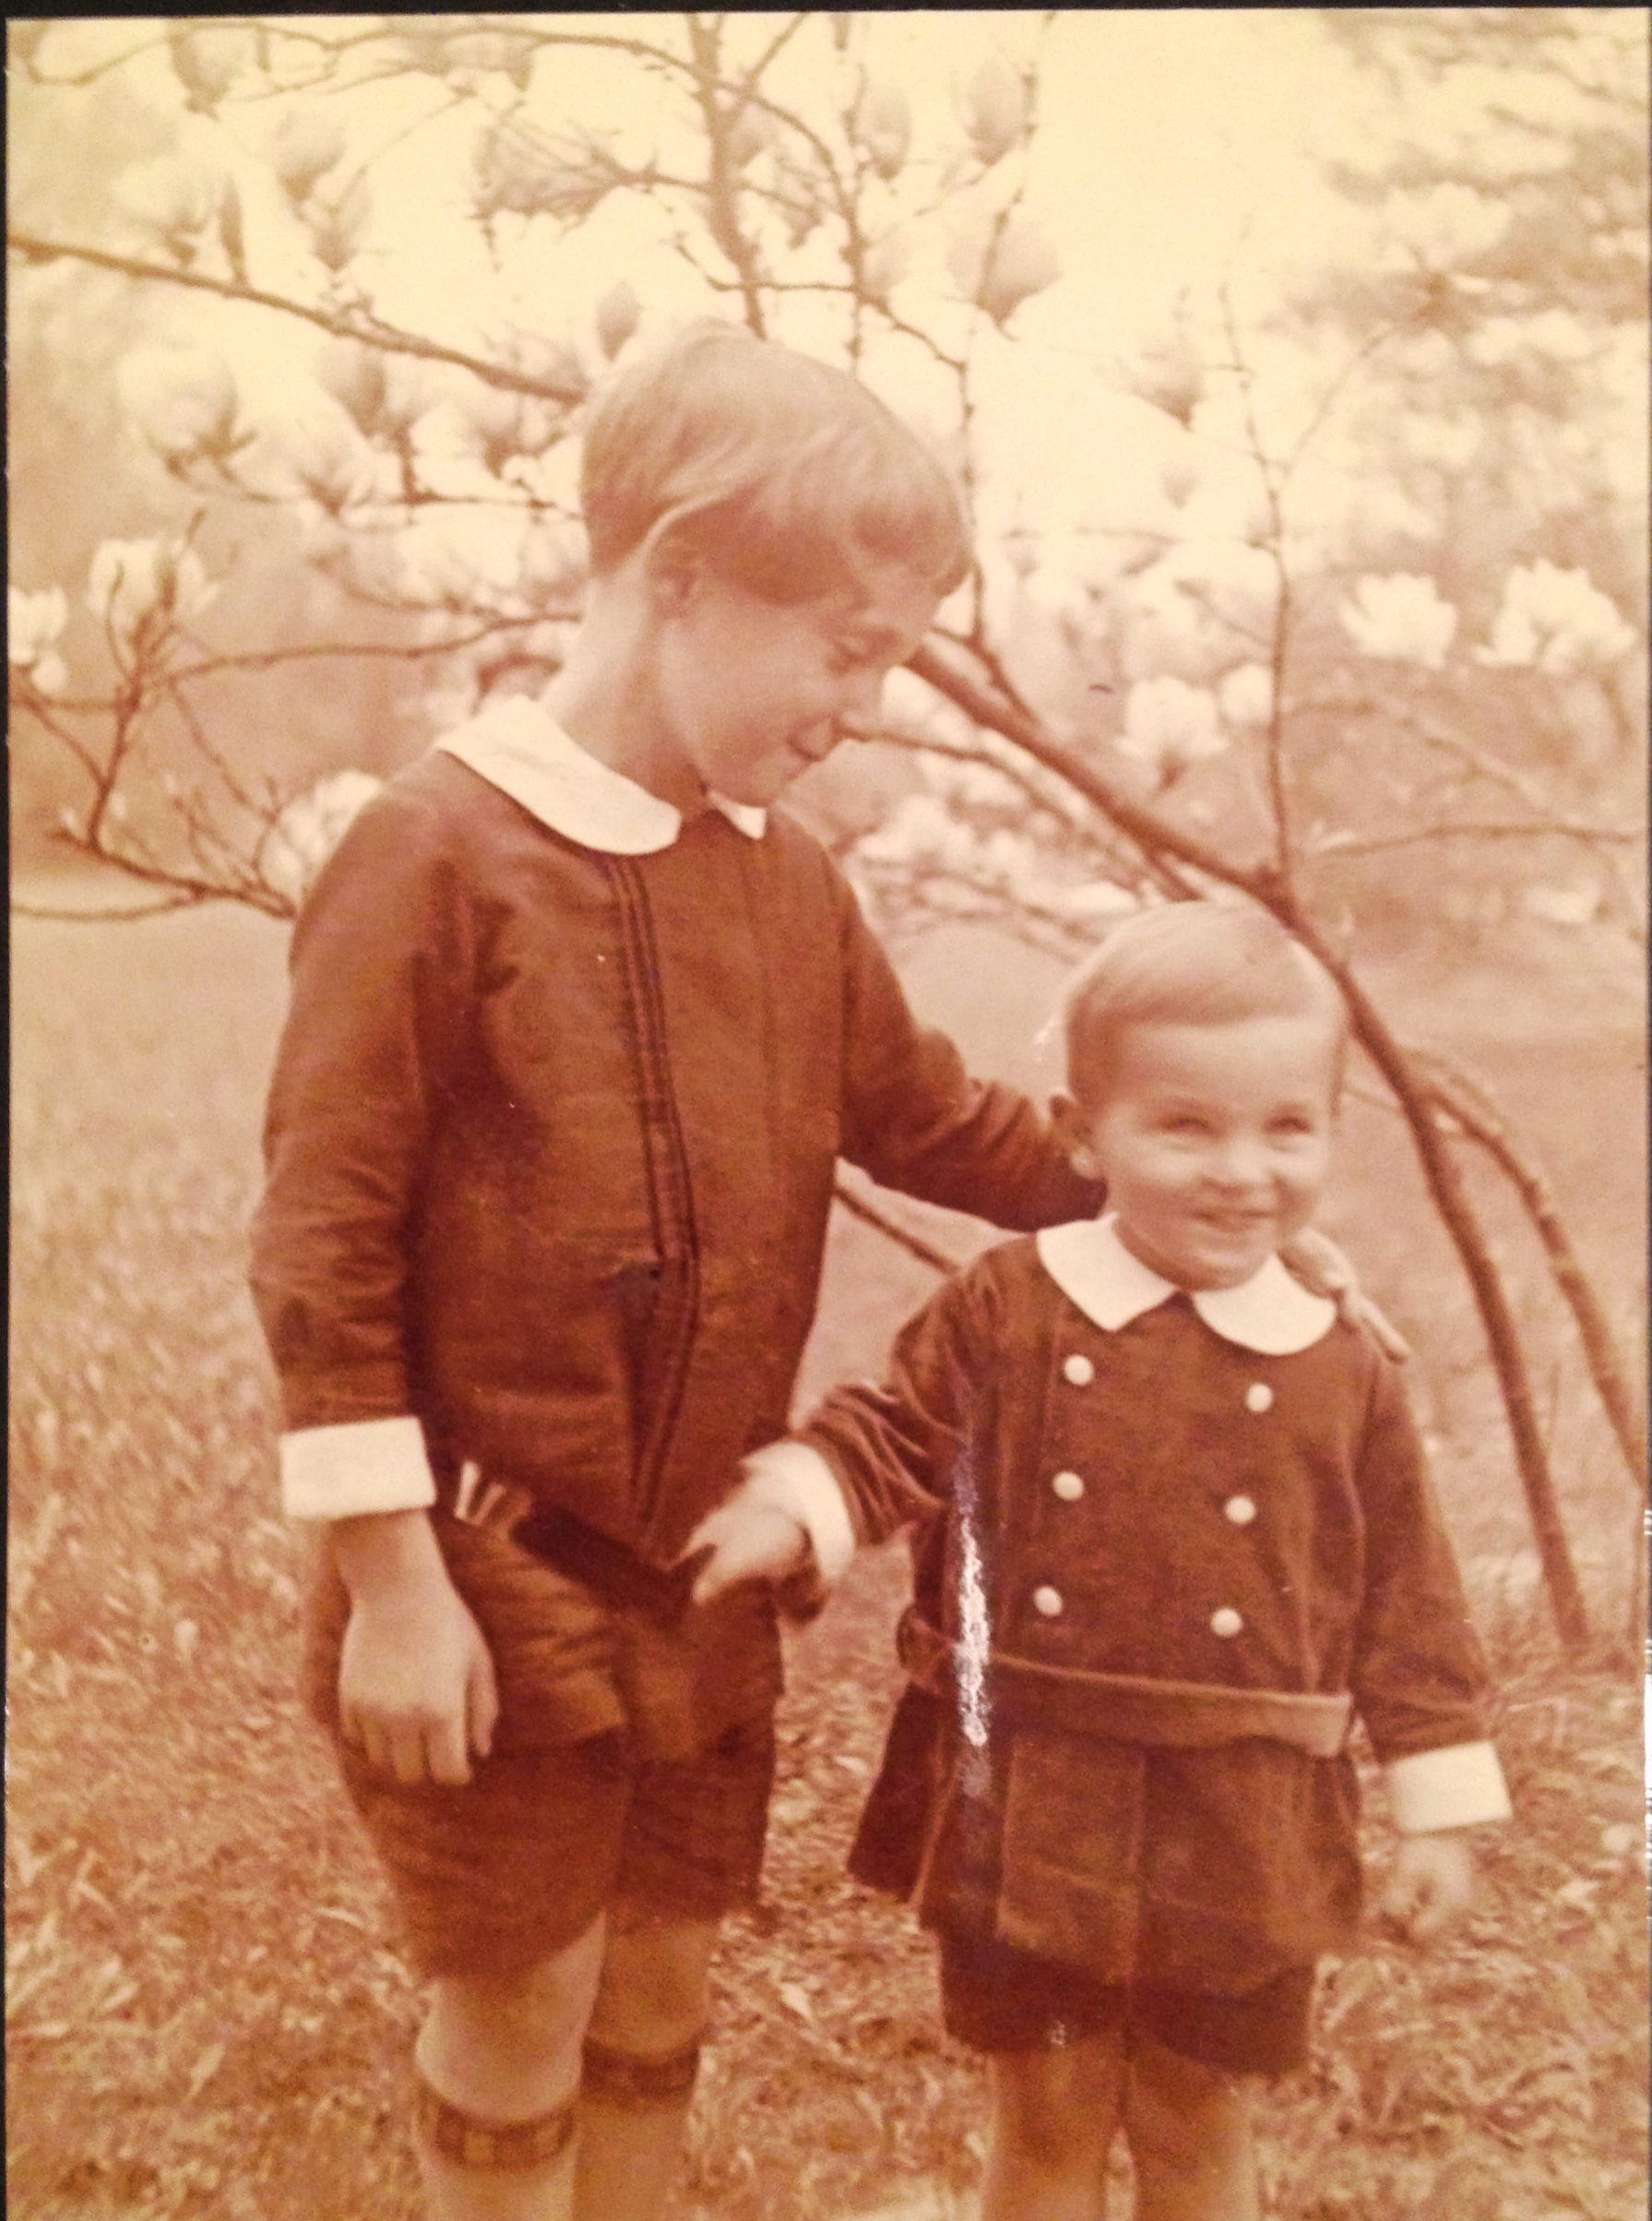 My father, Horst Joachim and his brother, Hans Dieter, my Uncle Dieter, as children